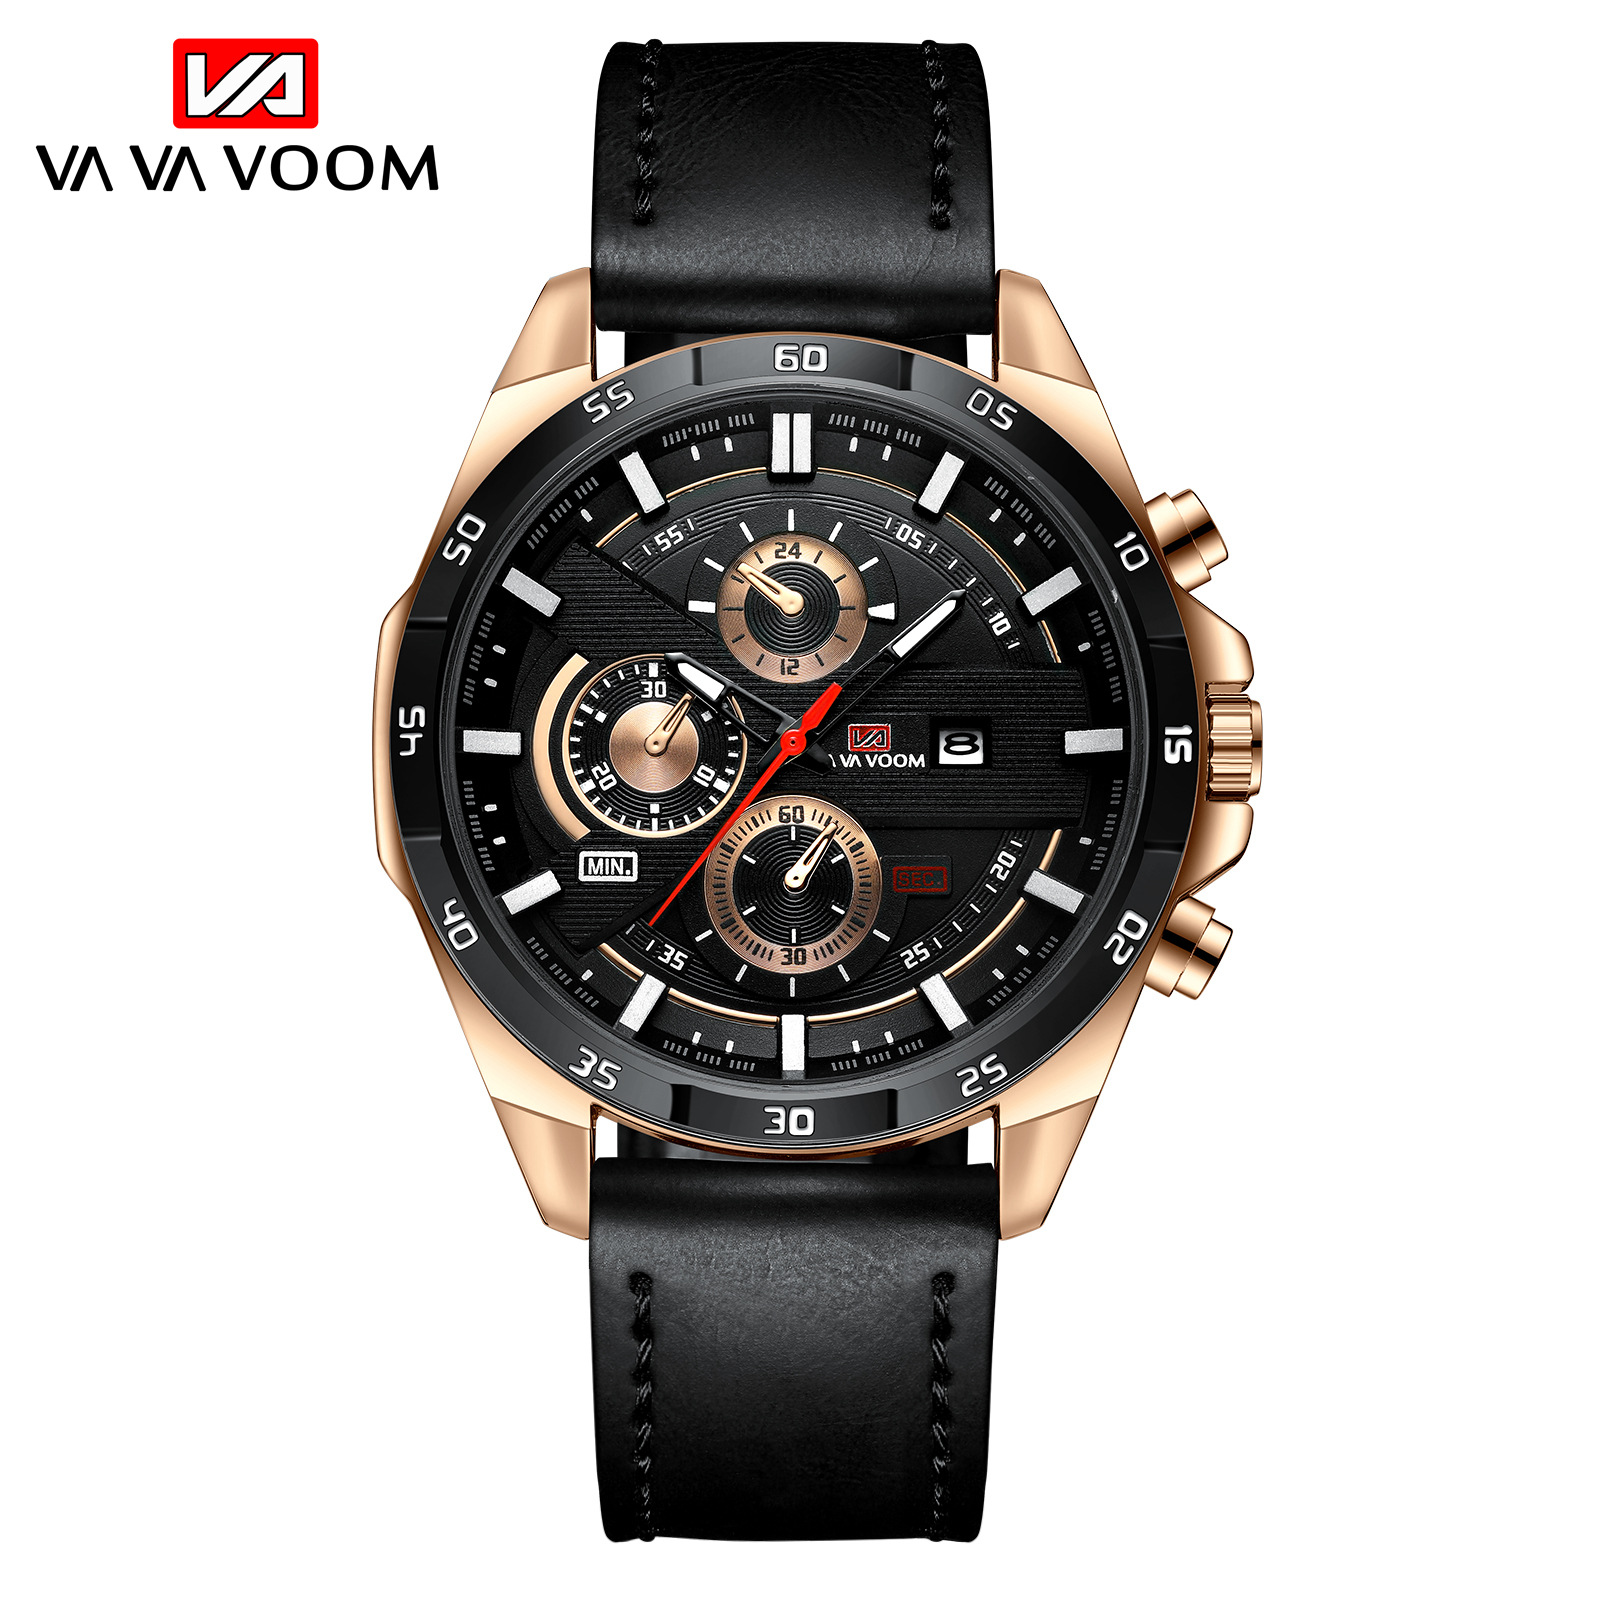 VAVA VOOM Brand Men Quartz Watch Leather Strap Business Wristwatch Men Military Casual Sport Watches Mens Relogio Masculino 2020